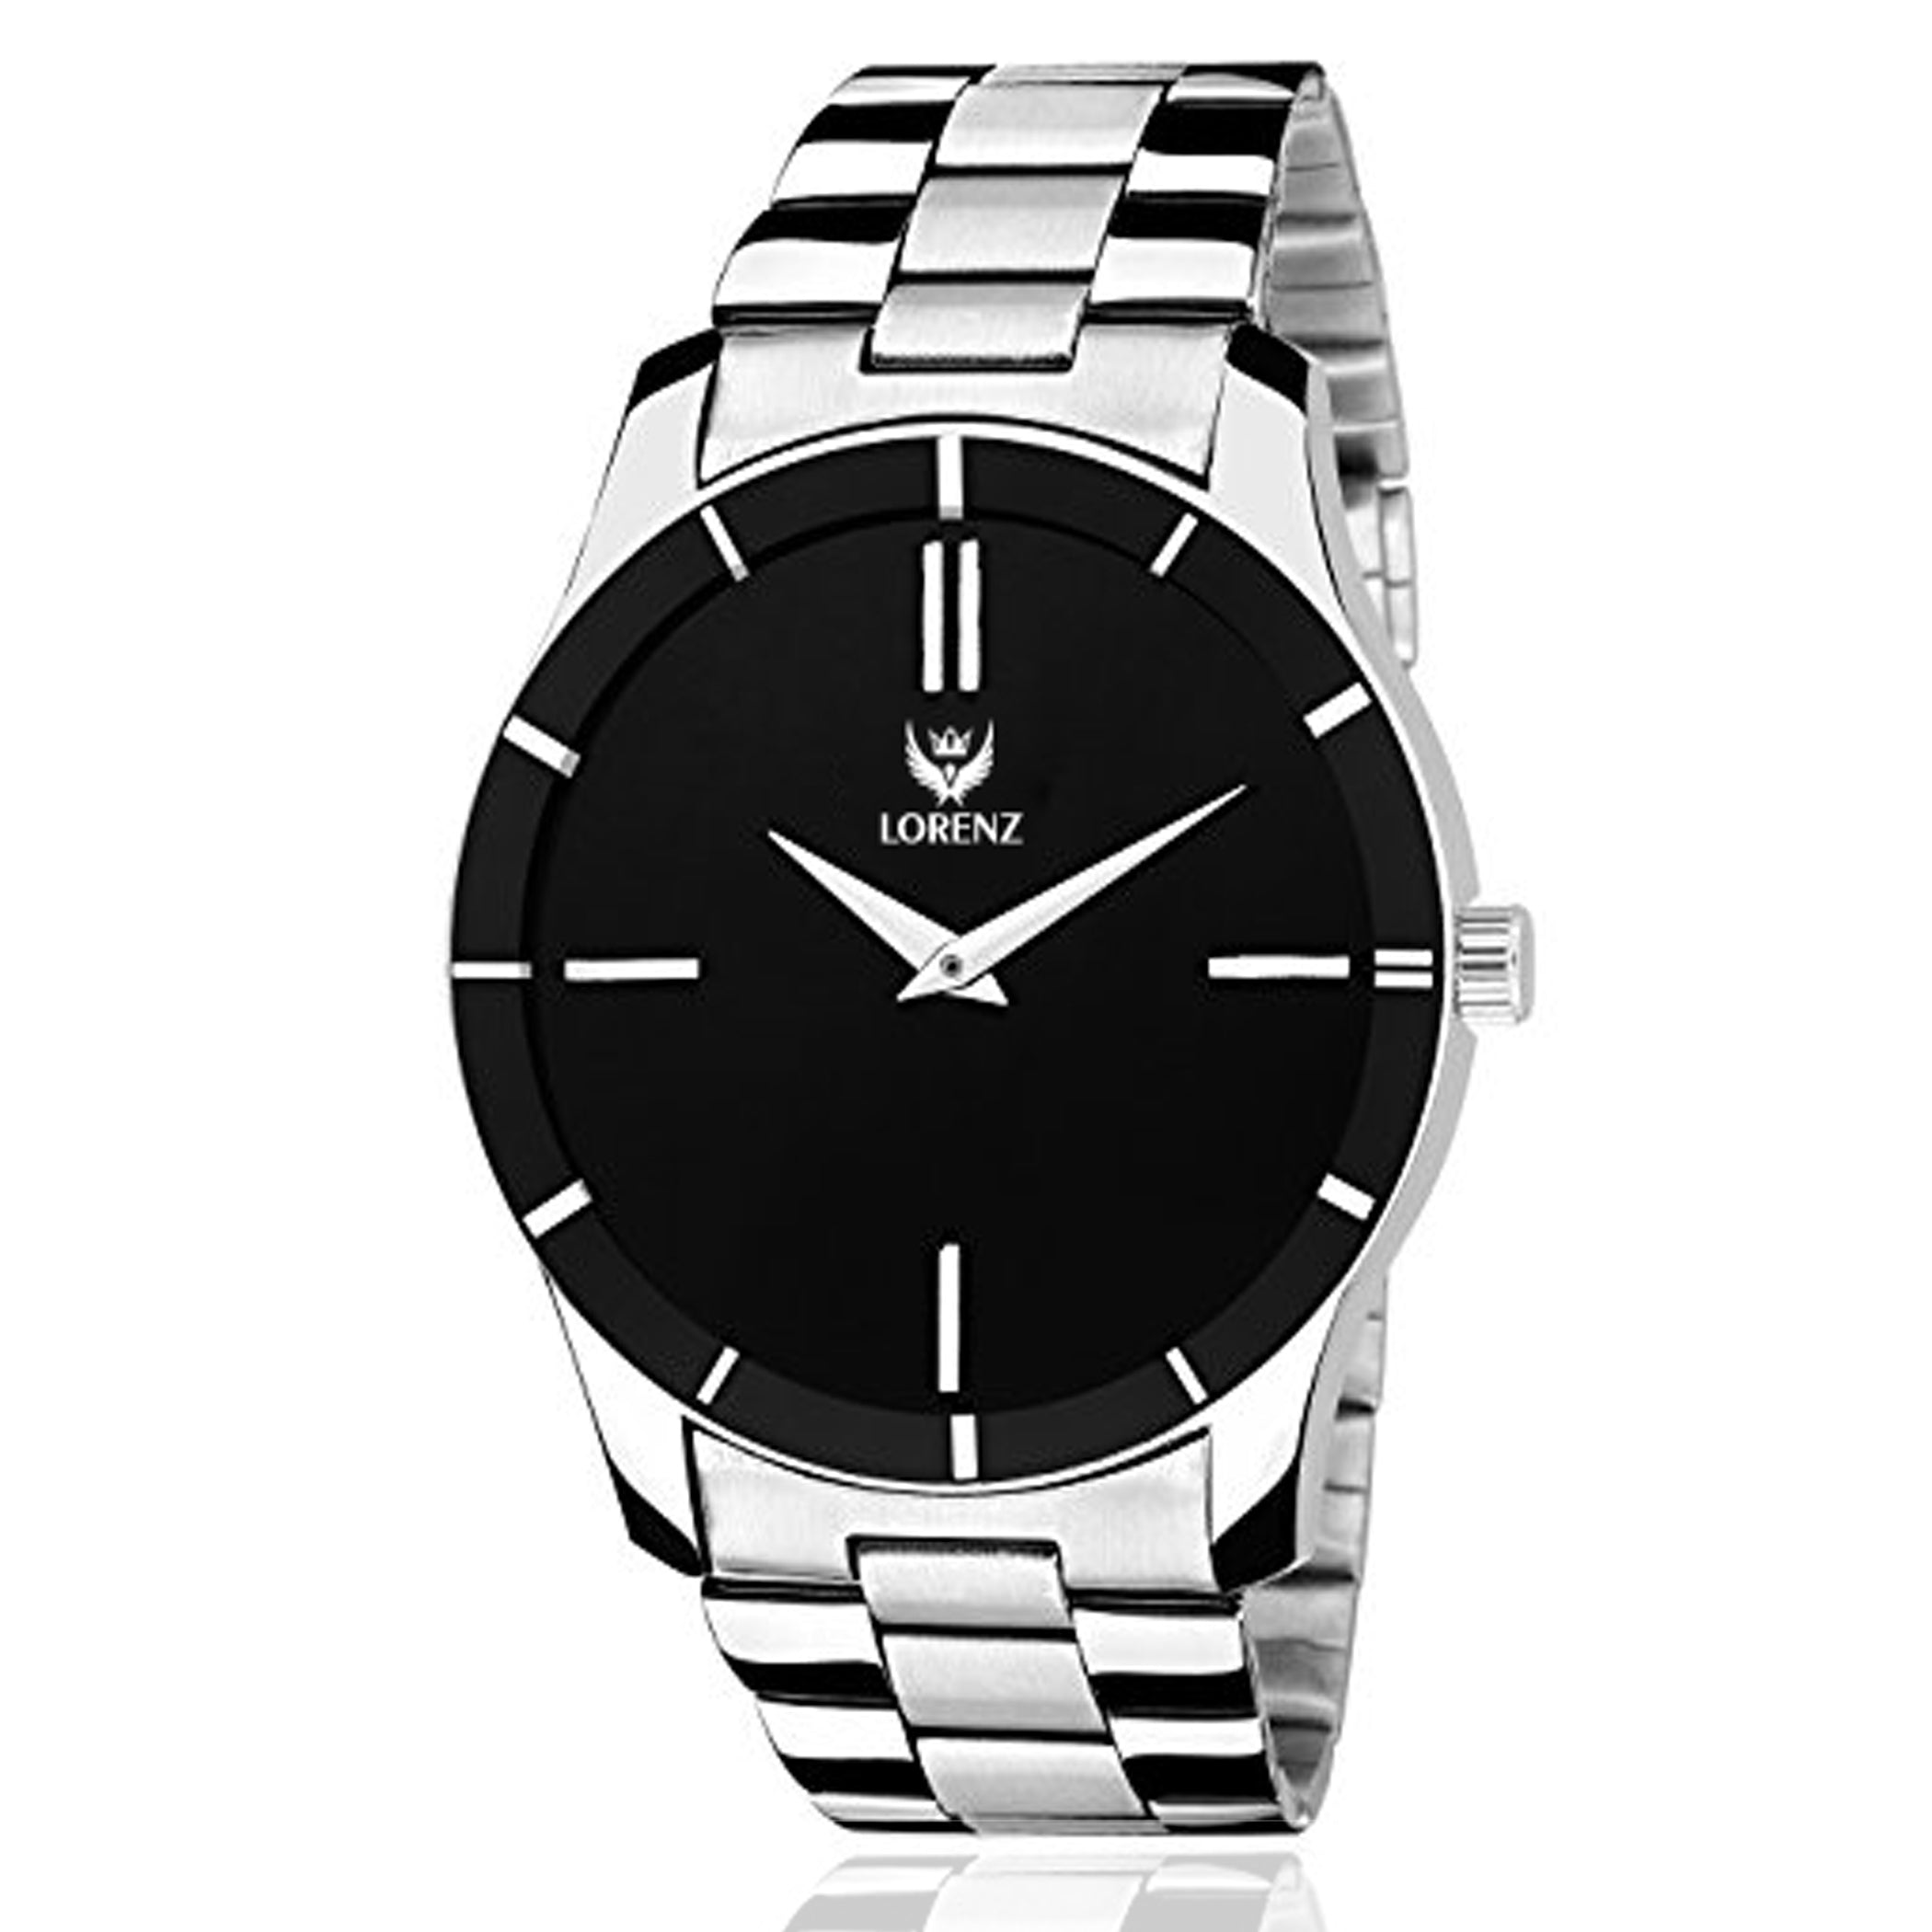 Lorenz Stainless Steel Black Dial Men's Watch- MK-1076A